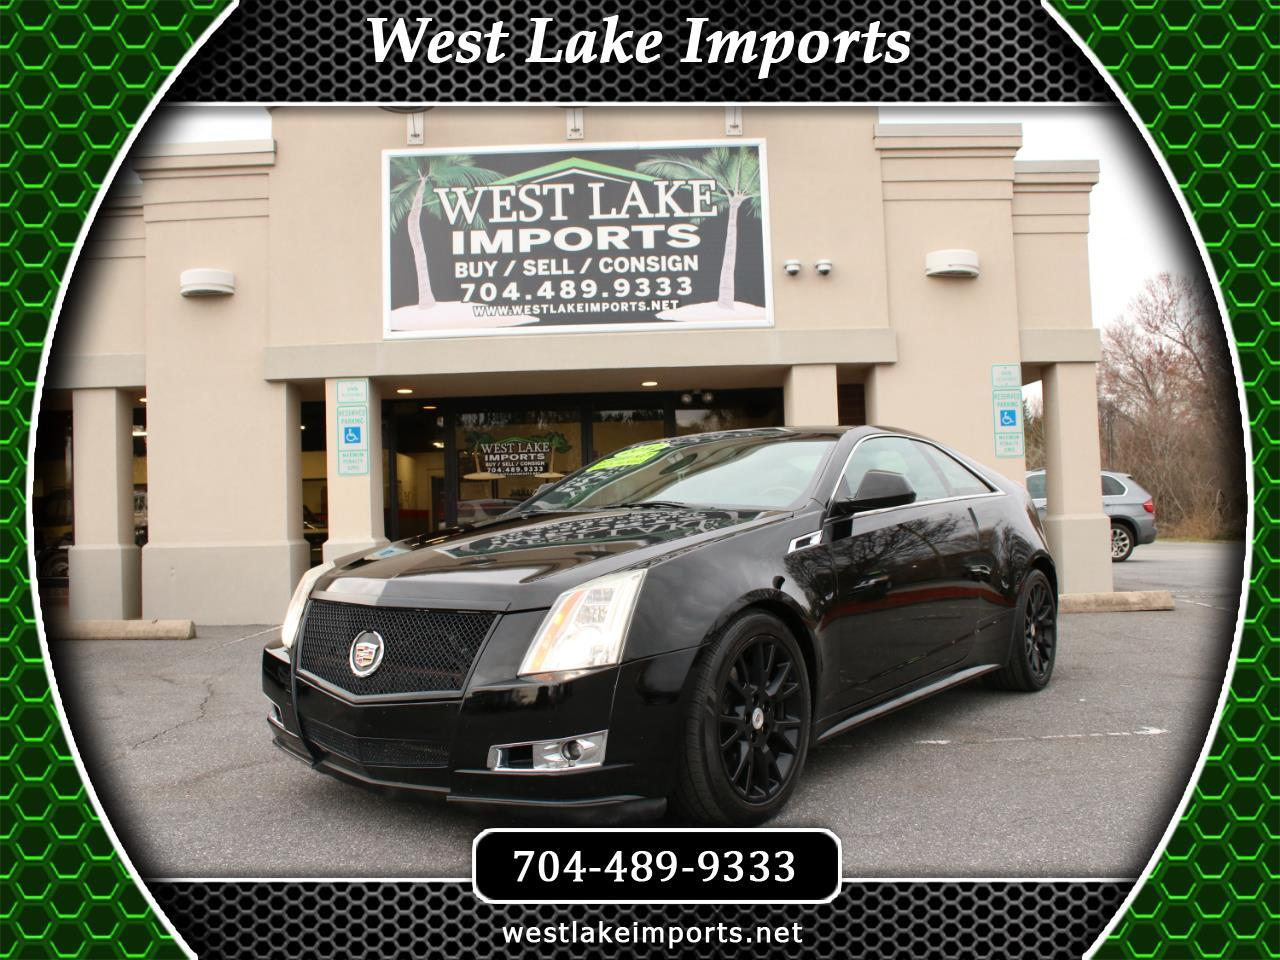 2012 Cadillac CTS Coupe 2dr Cpe Premium RWD